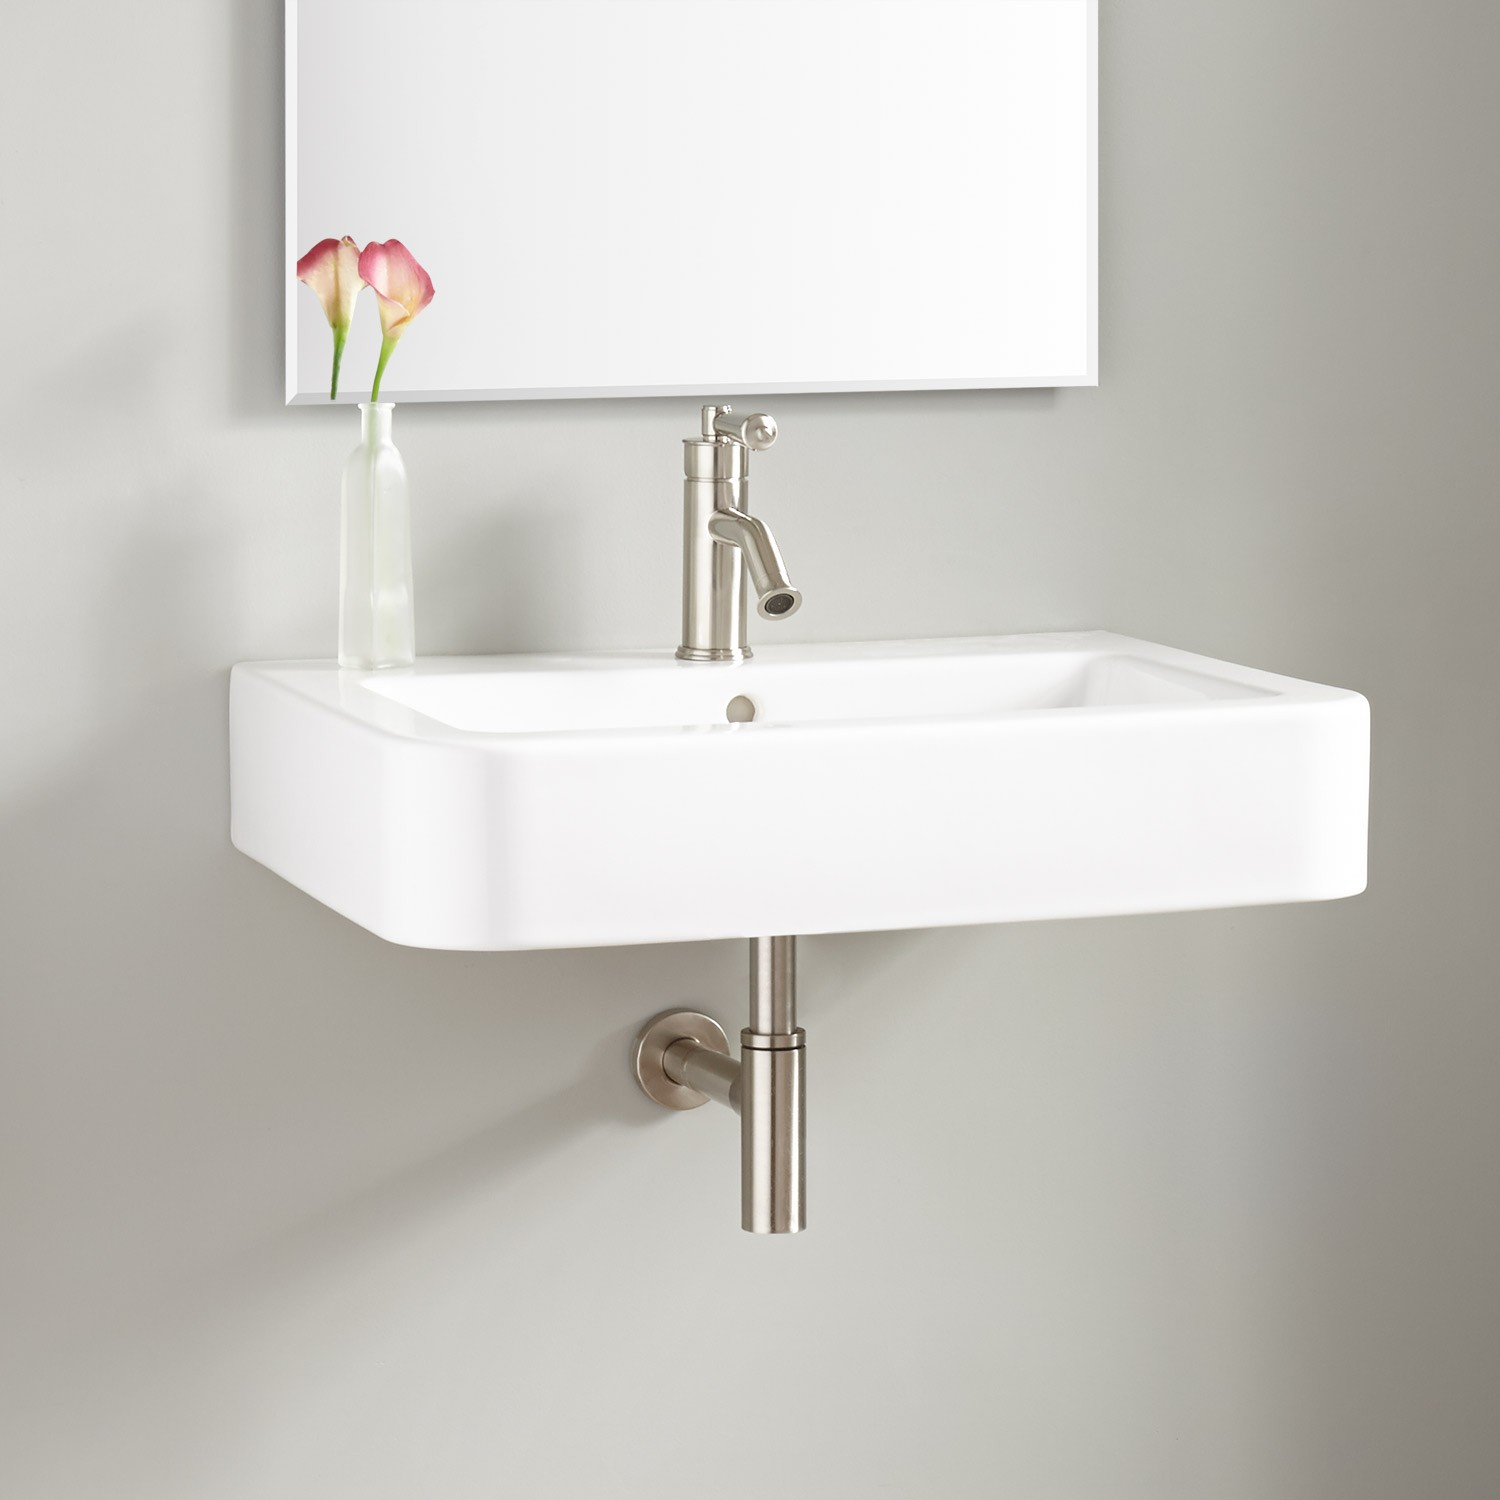 "Glamorous 26"" Burleson Porcelain Wall-Mount Sink - Bathroom inside Small Bathroom Sinks Wall Mount"